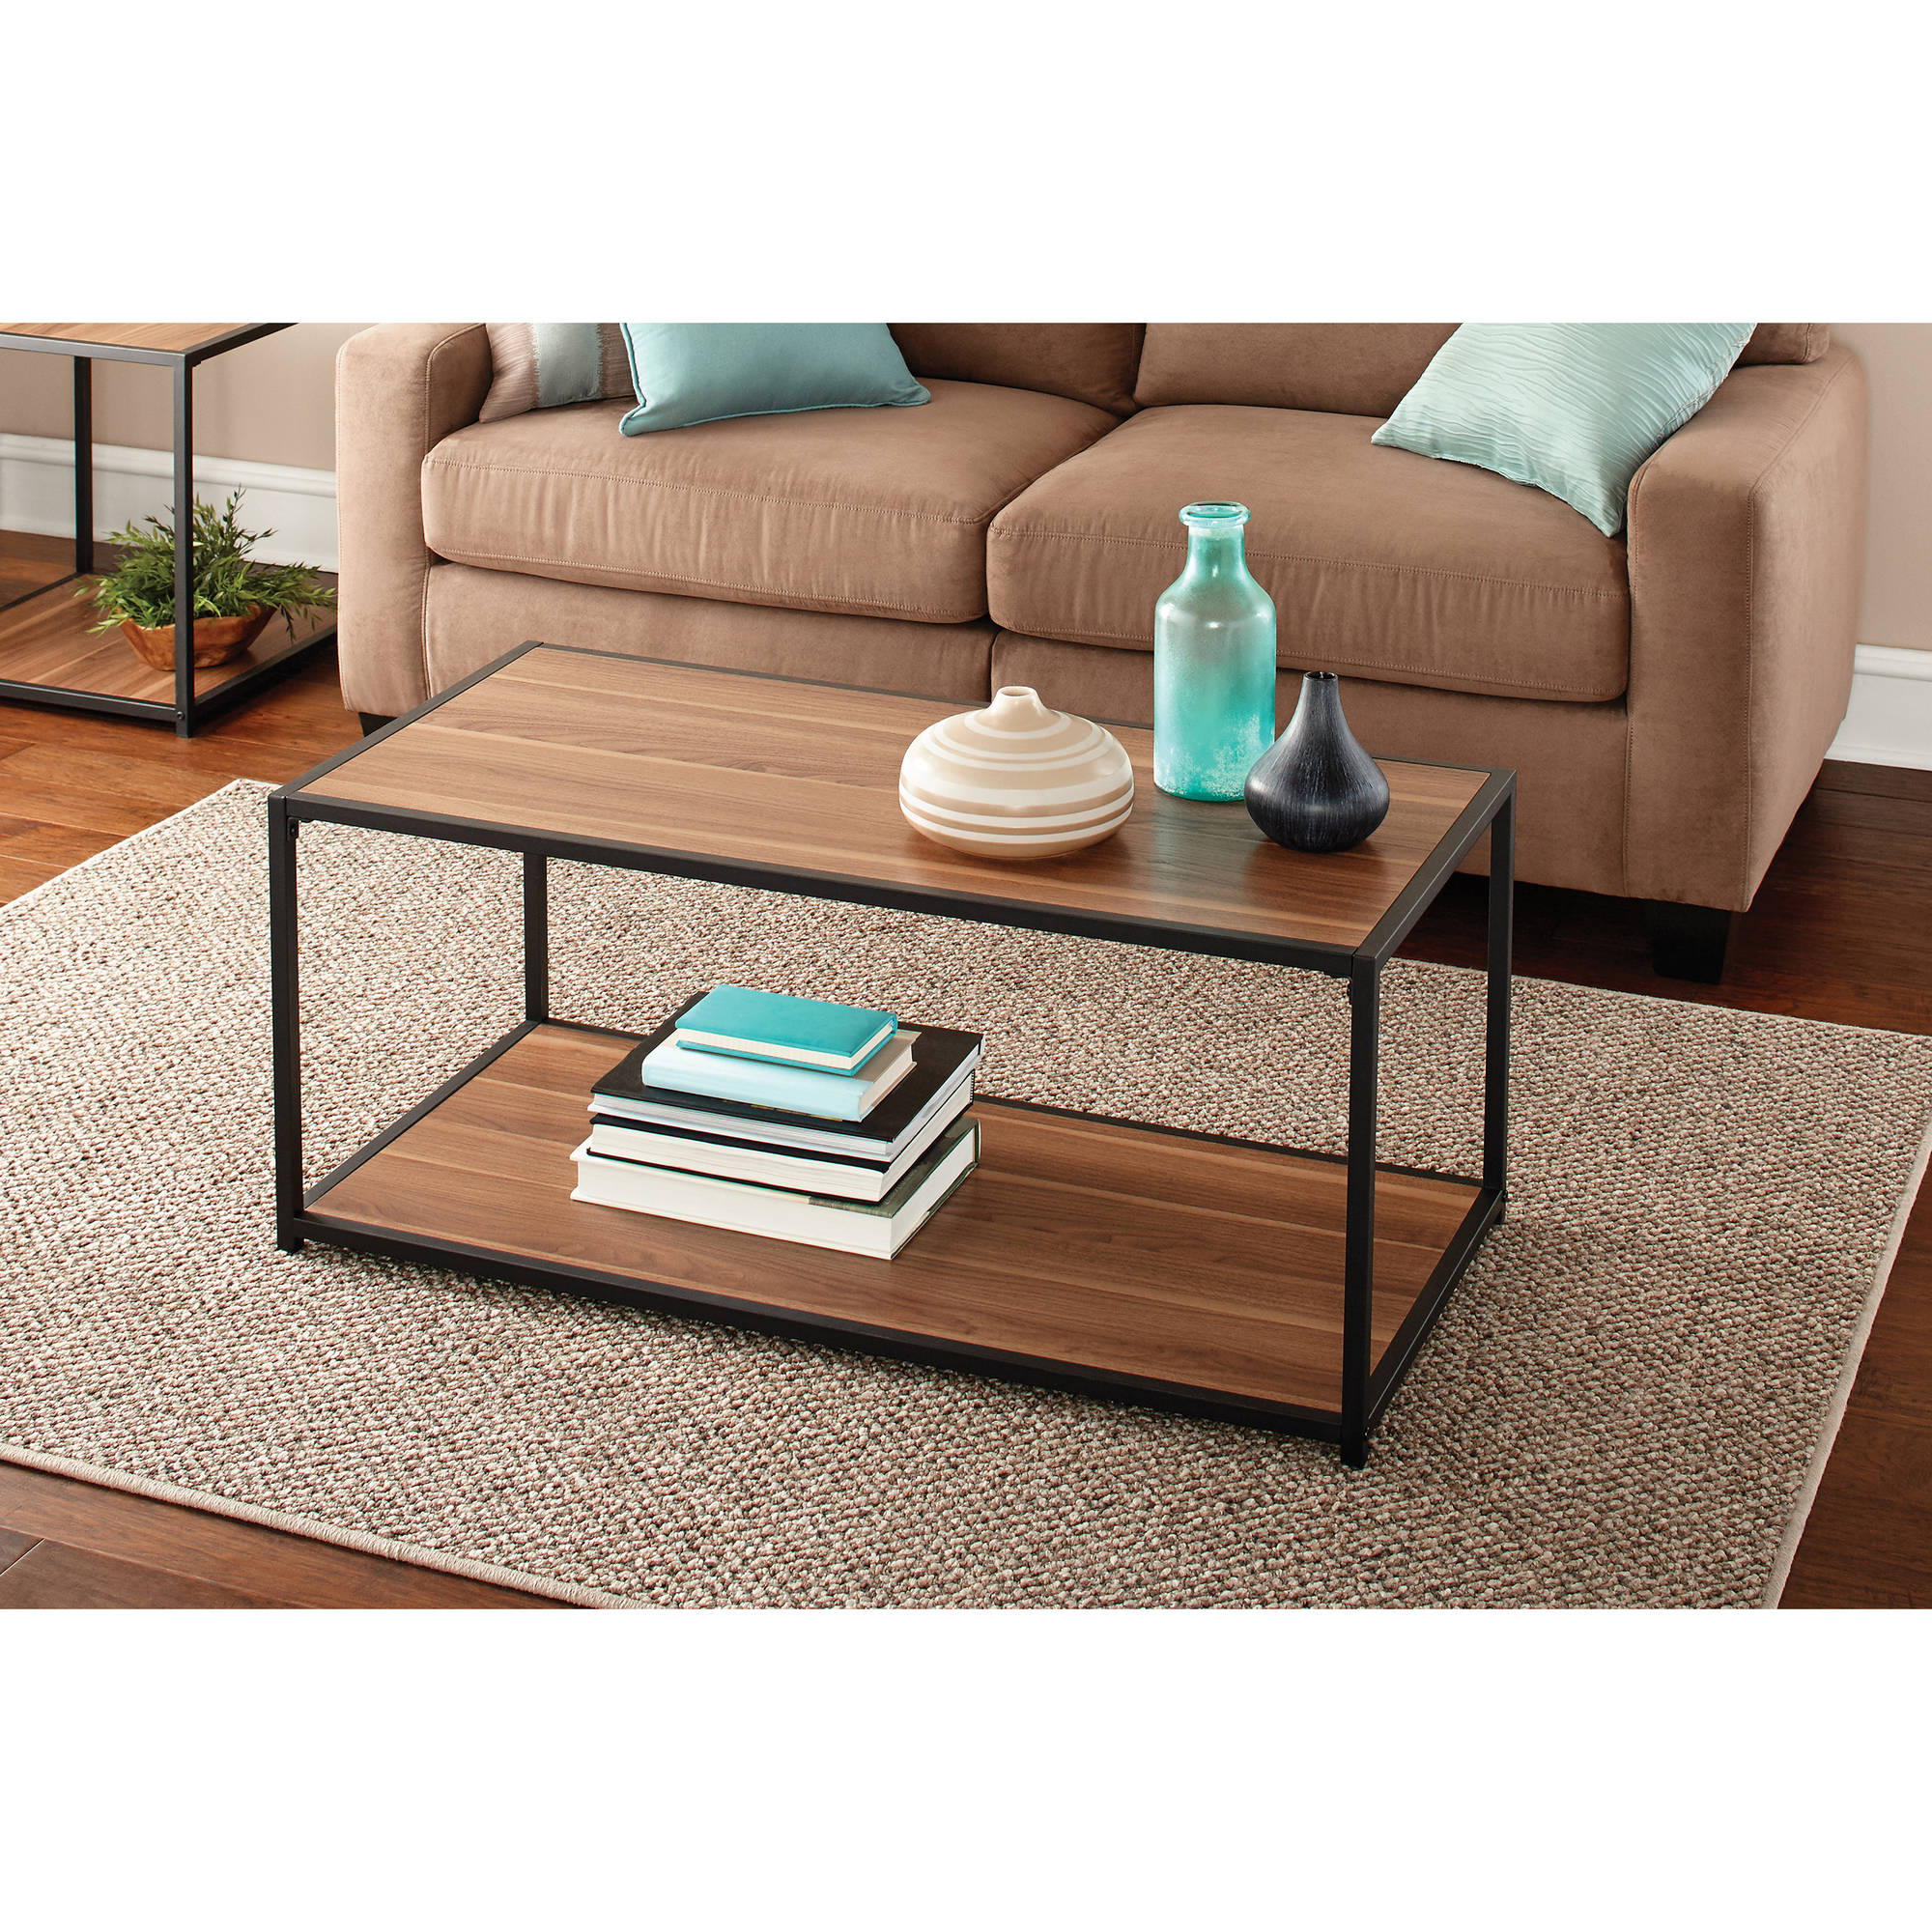 mainstays metro coffee table multiple finishes end black oak finish silver floor lamp ashley furniture glass replacement modern tray top and tables for dark brown couch ikea